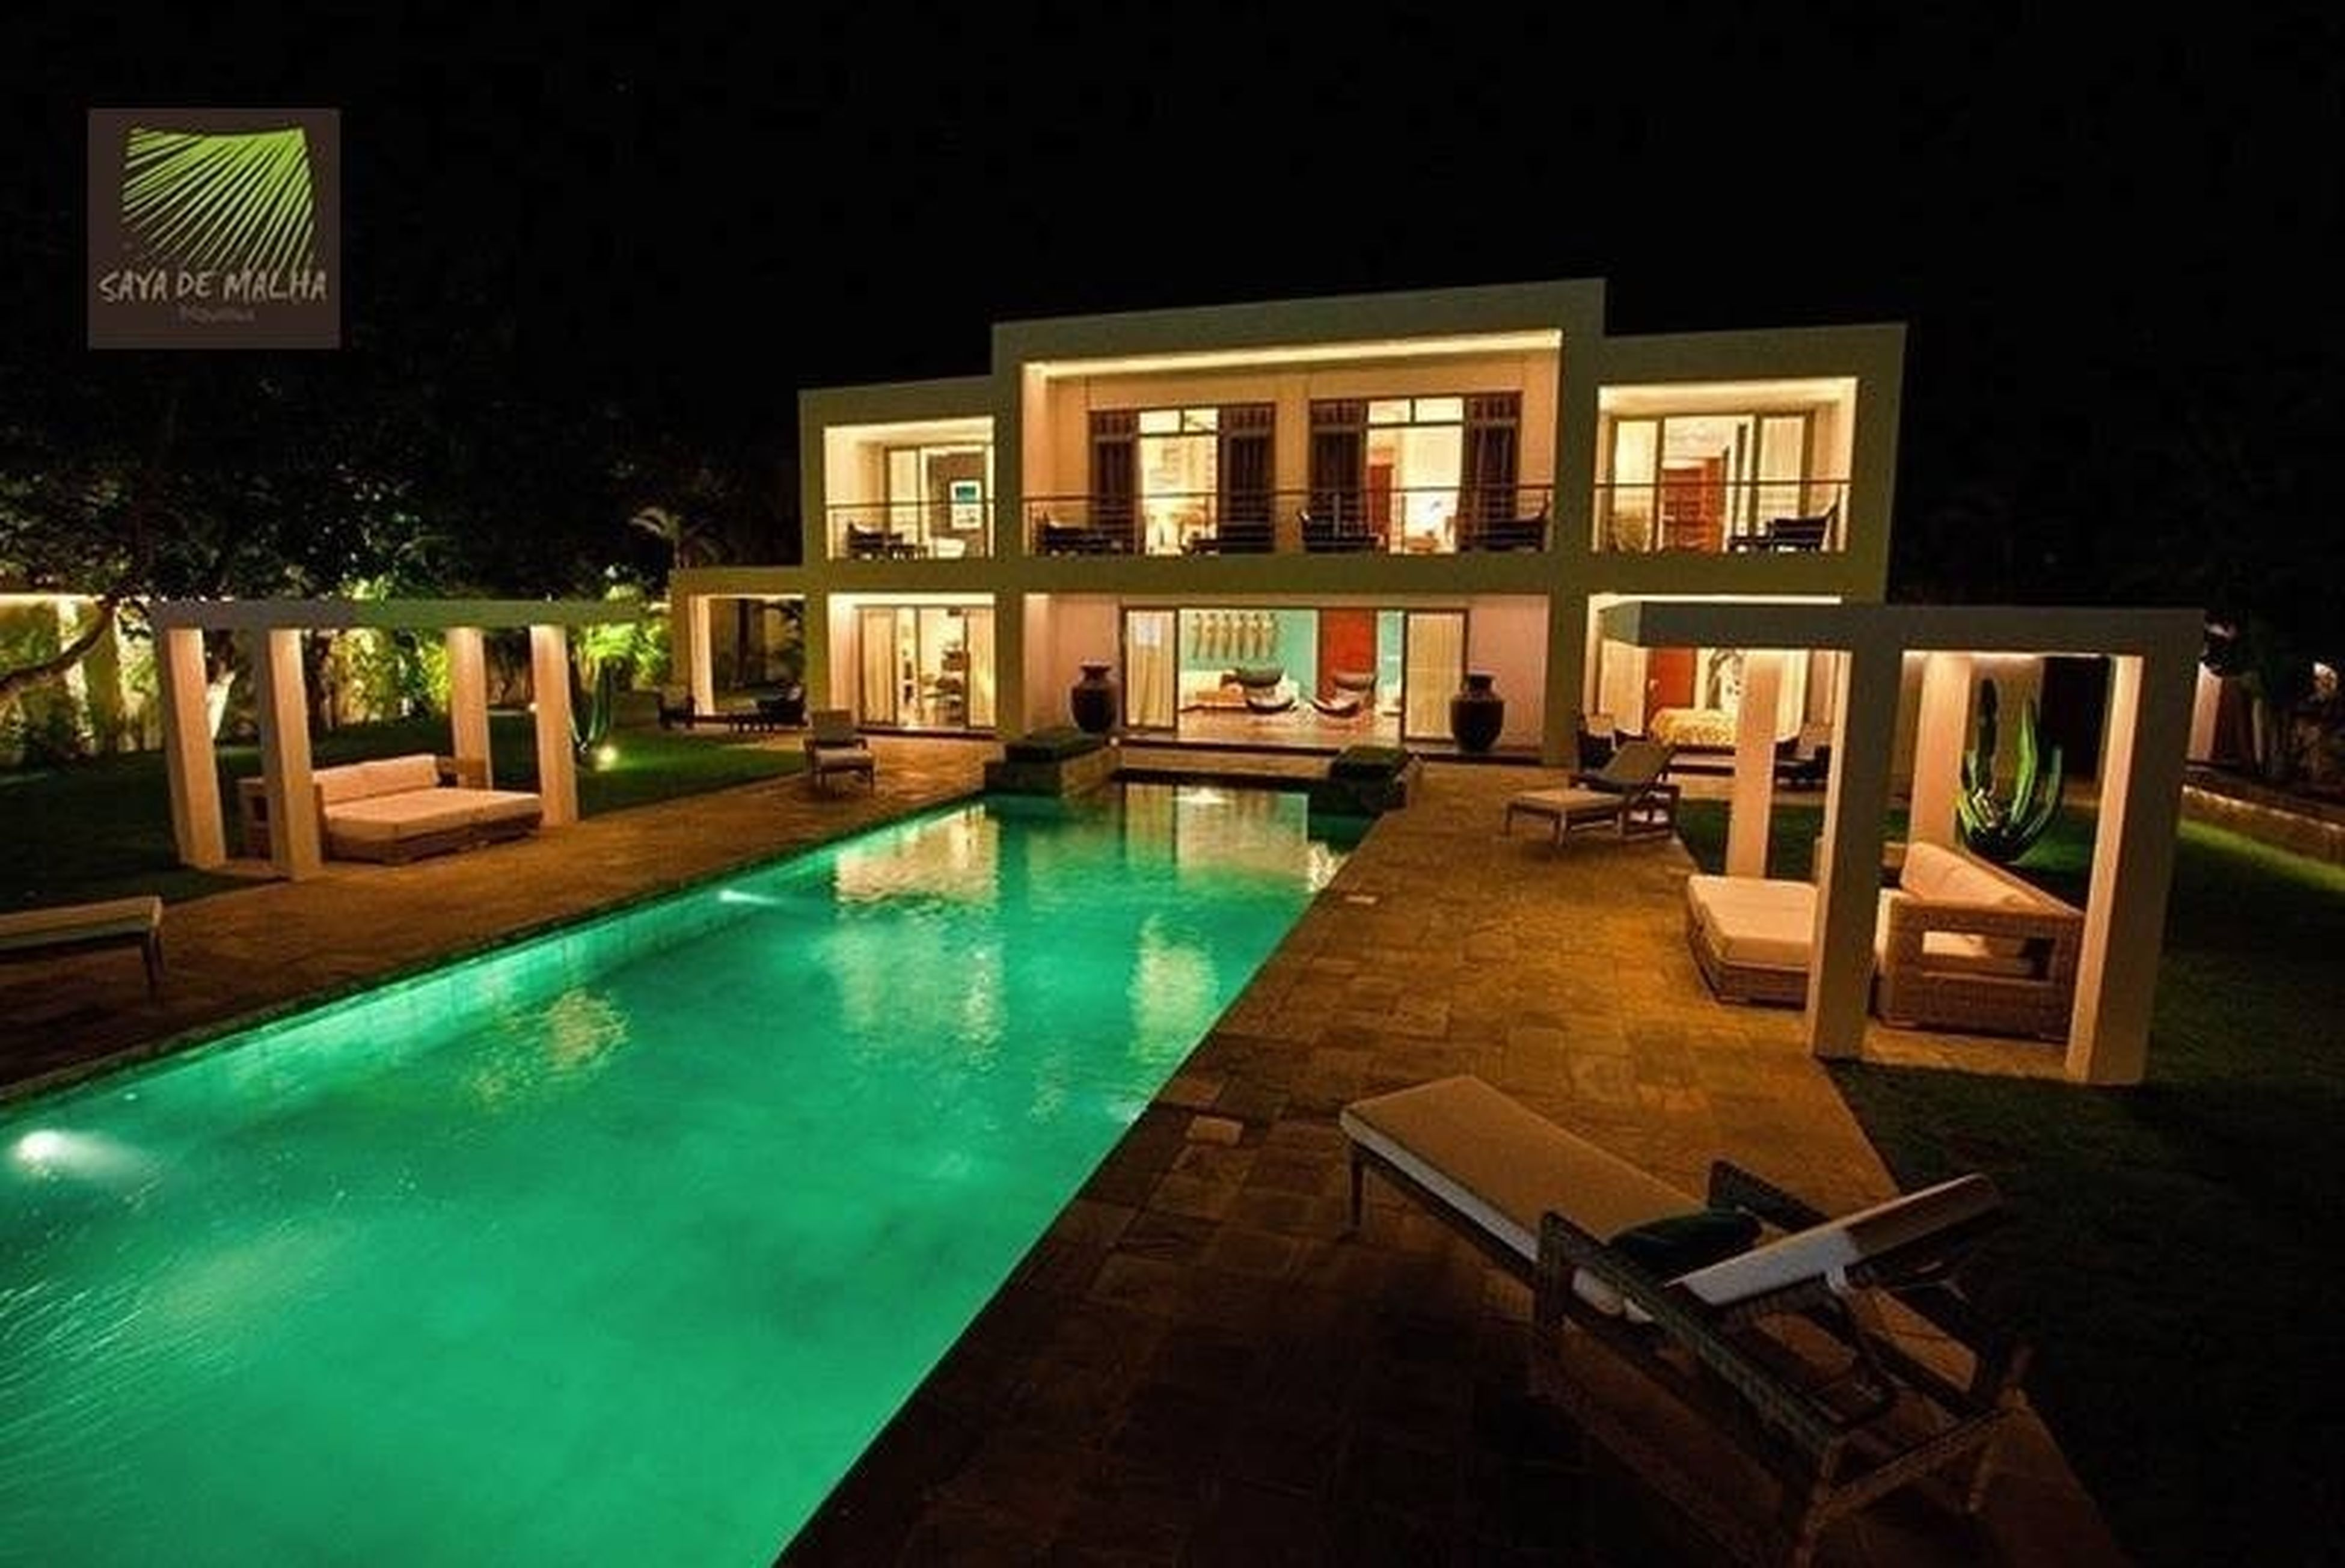 architecture, built structure, building exterior, water, reflection, house, night, window, residential building, illuminated, swimming pool, table, residential structure, building, city, tree, absence, no people, outdoors, chair